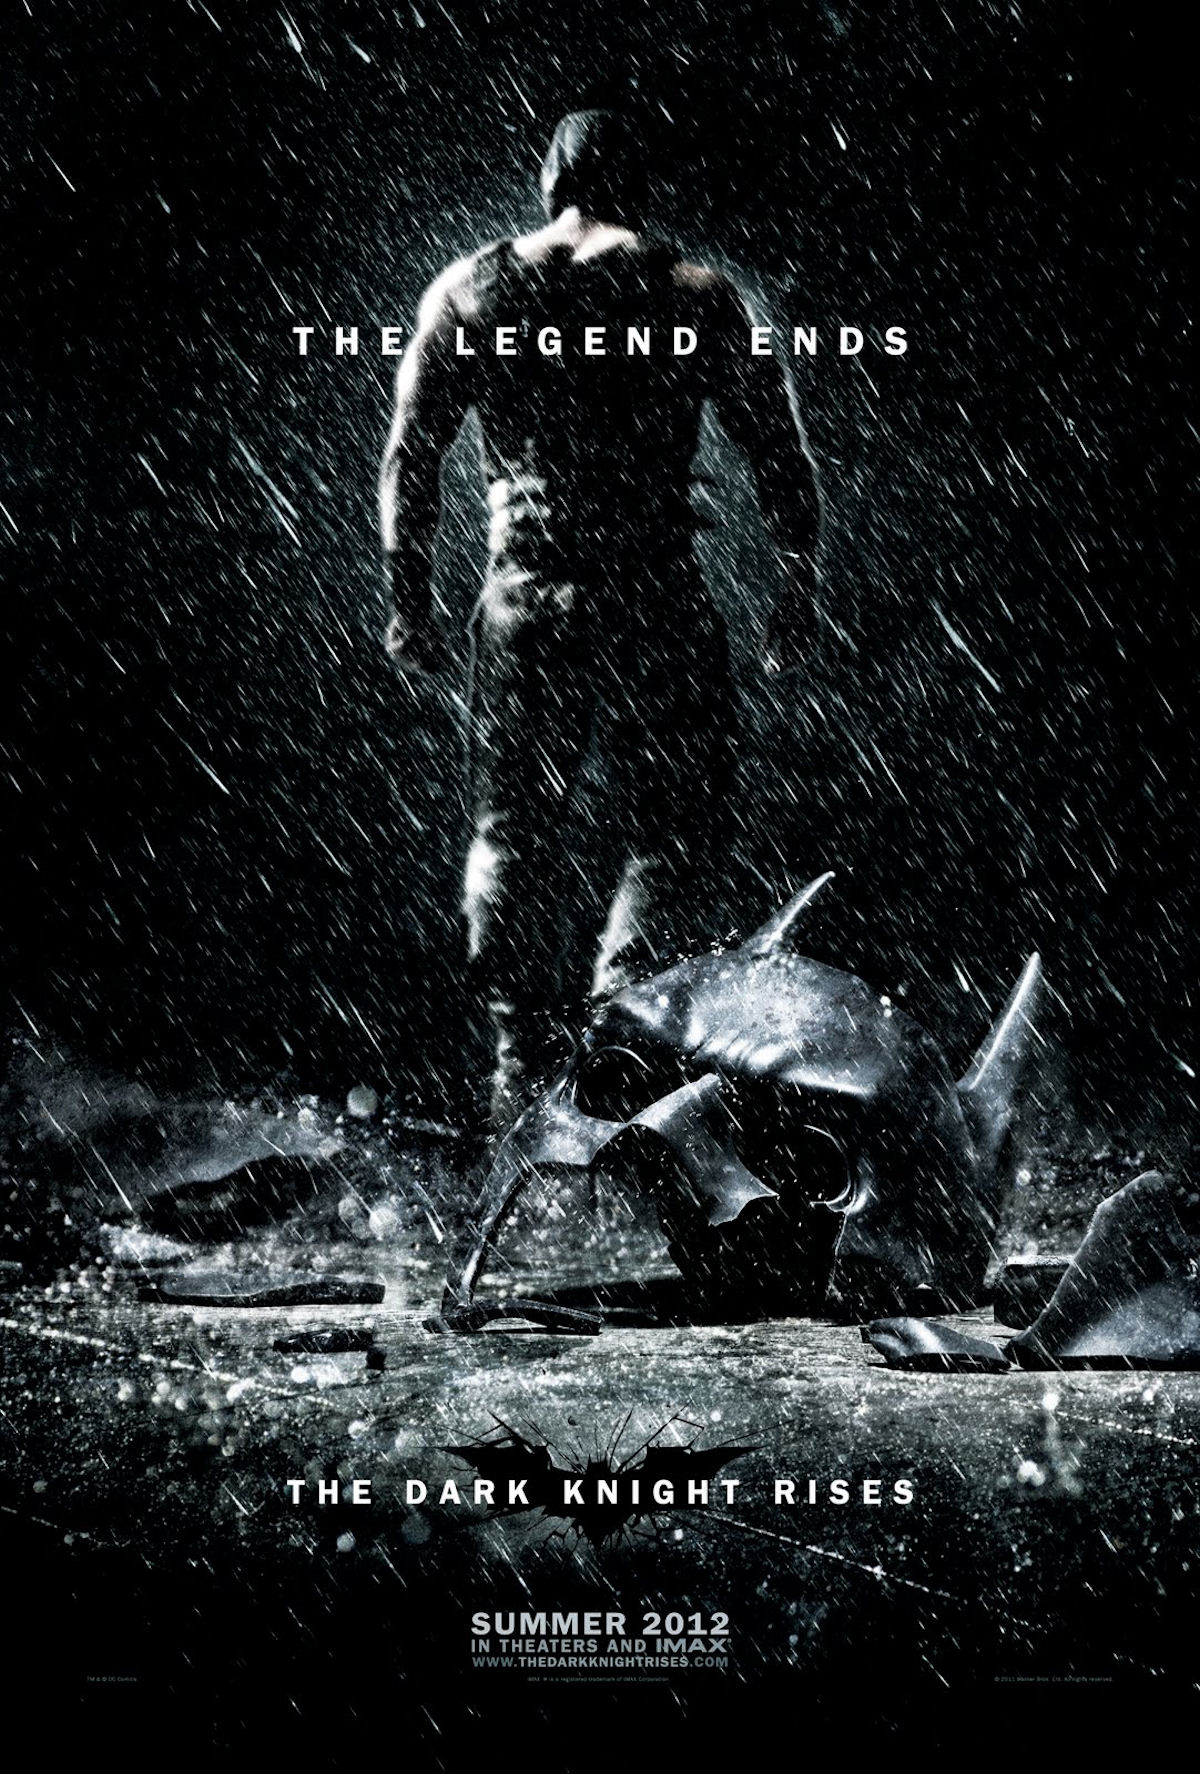 The-Dark-Knight-Rises-Bane-Break-Poster-